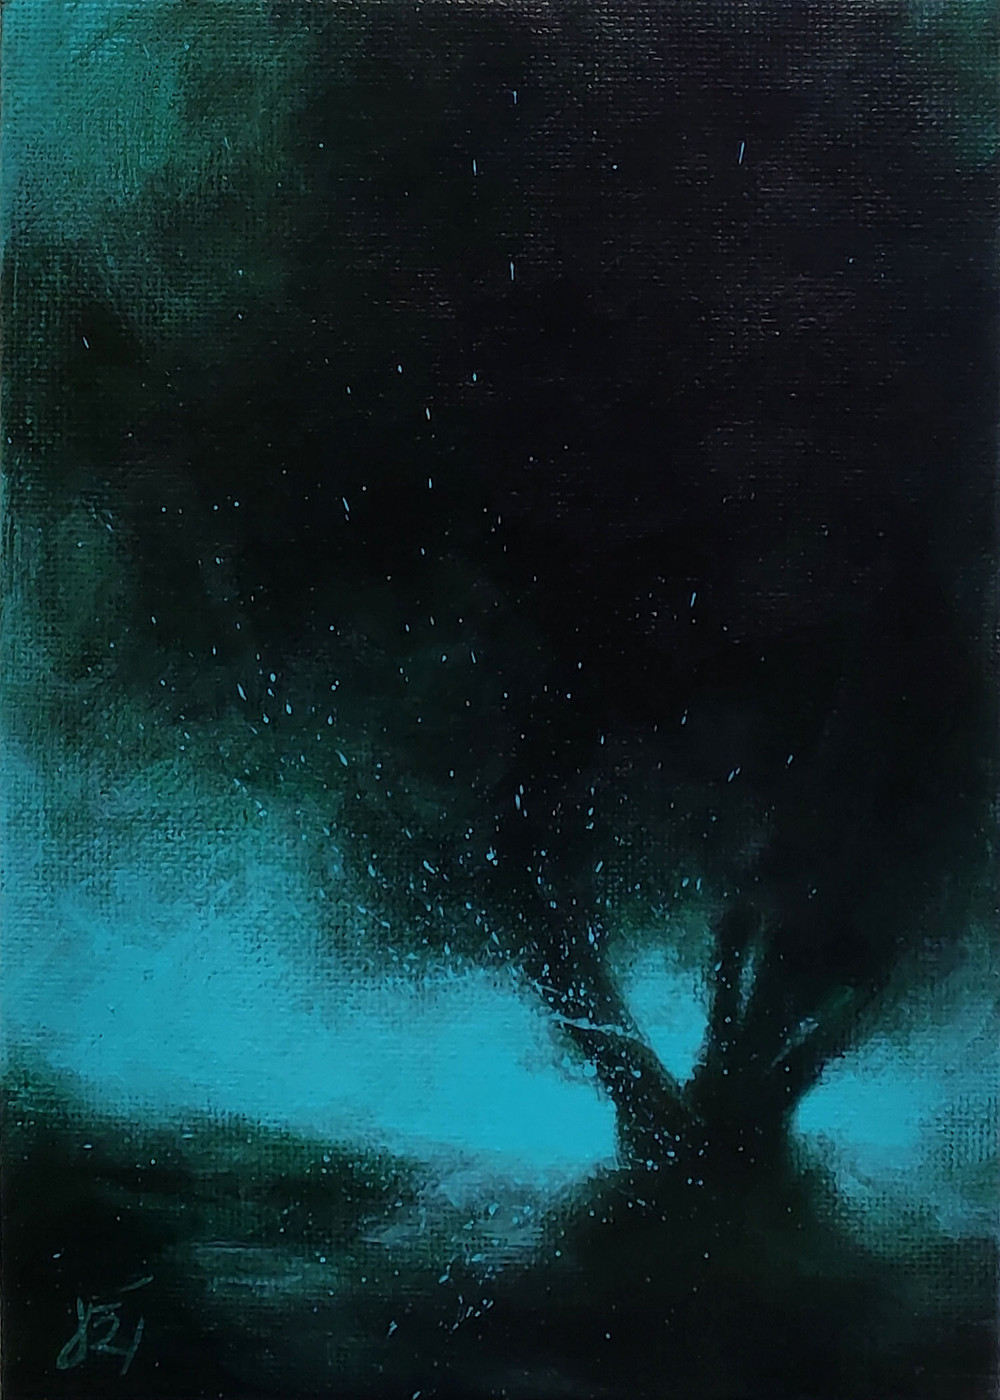 Moody dark tree on a glowing teal background.